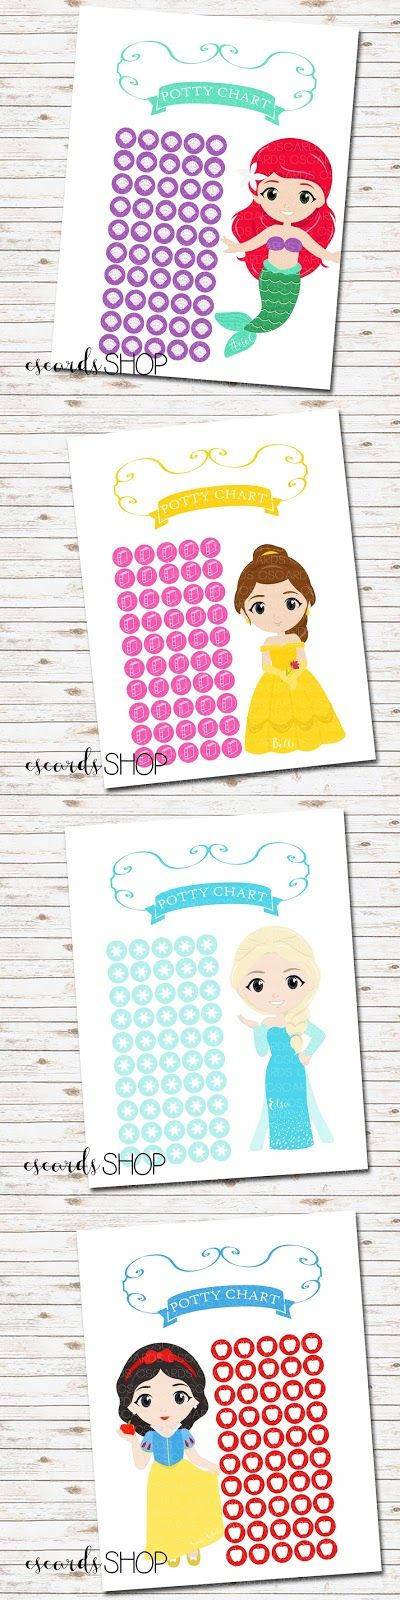 Disney Princess Potty Charts! Such a fun way for little girls to earn a sticker when they do a great job! 50 places for stickers! 10 different princesses to choose from! Only $5! --CS Cards